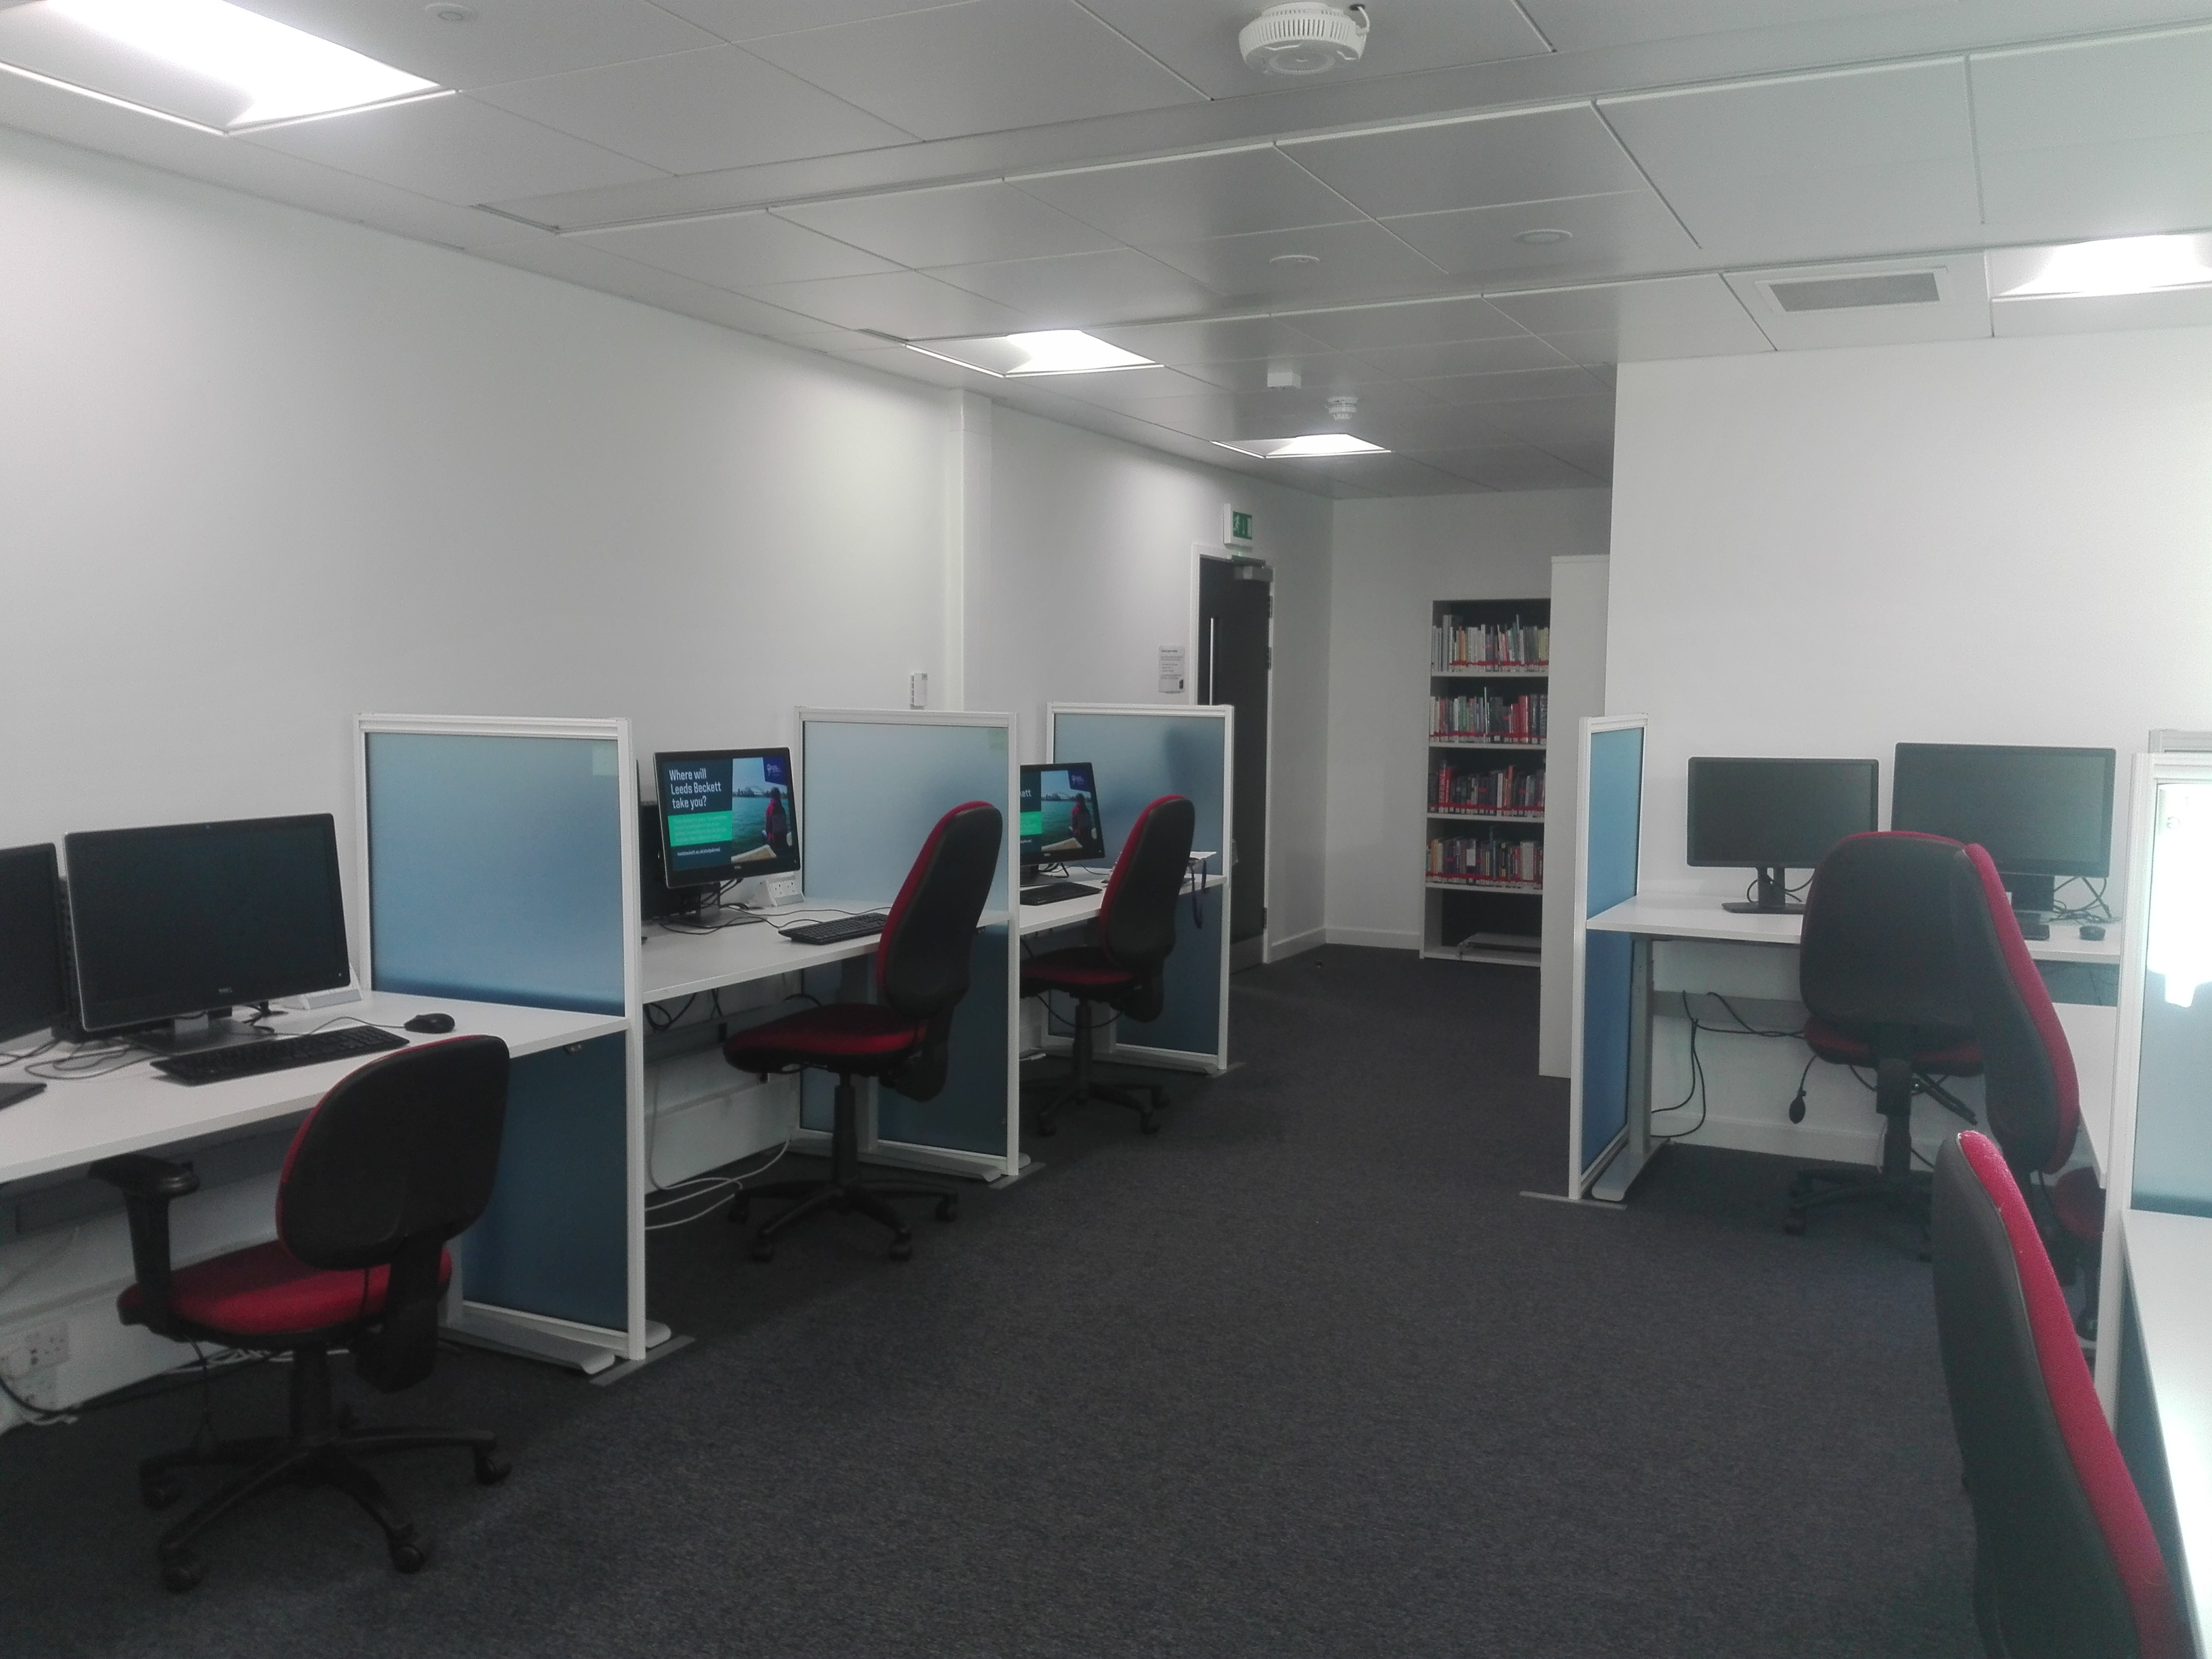 The Disability Resource Area at Sheila Silver Library has a calm and minimalist feel. There are several PCs separated by desk dividers. There is a collection of books by the door.